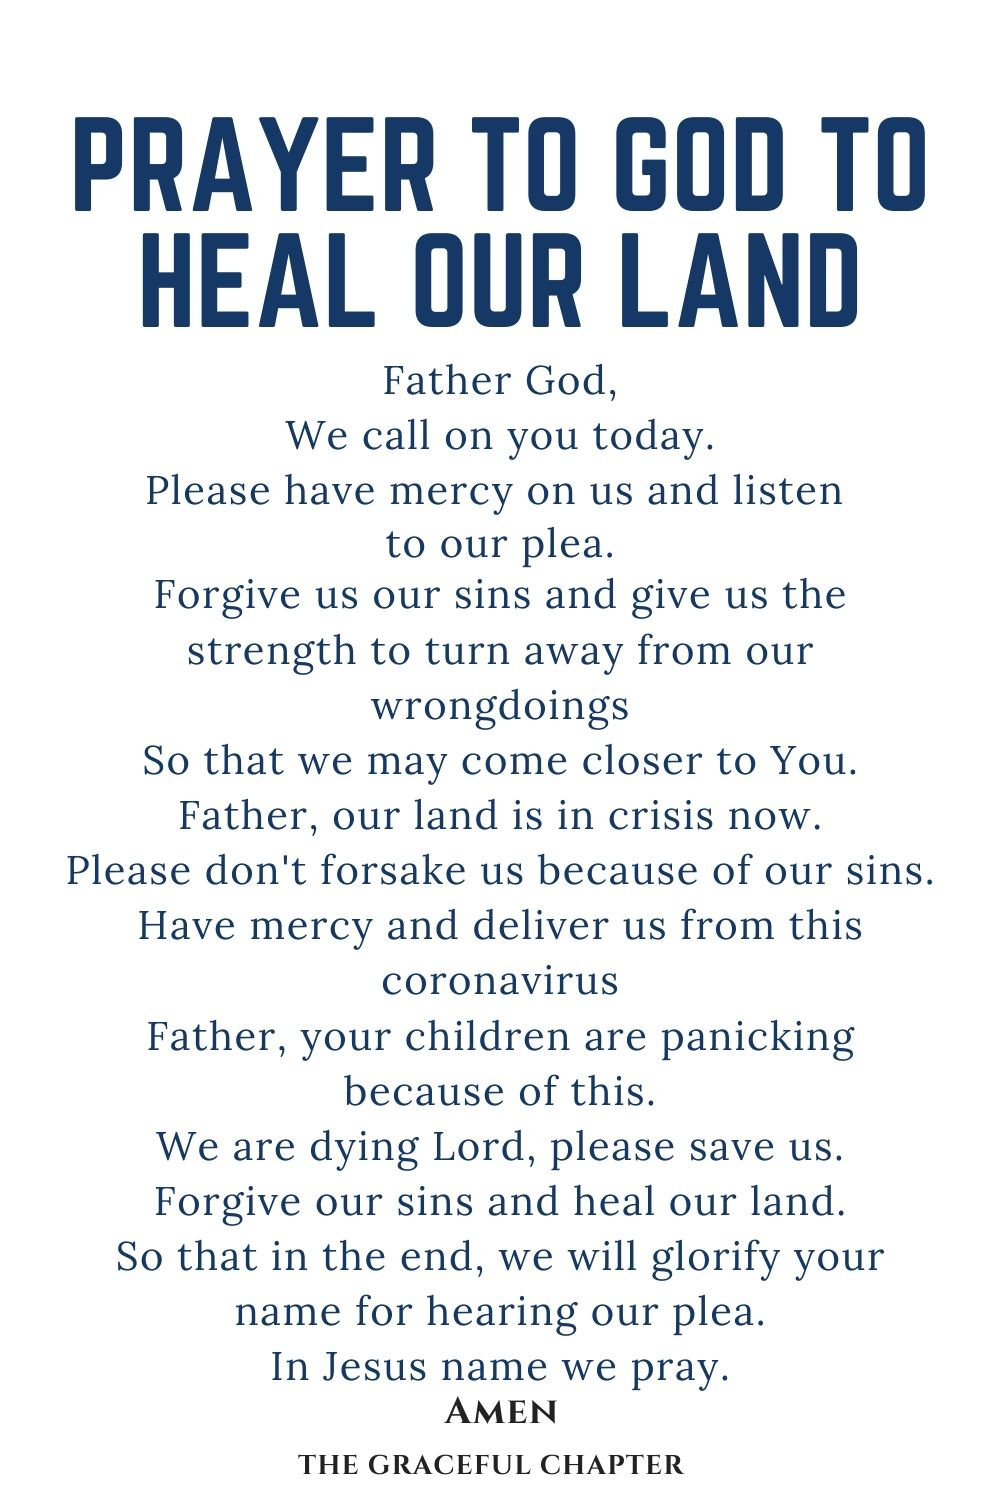 prayer to God to heal our land